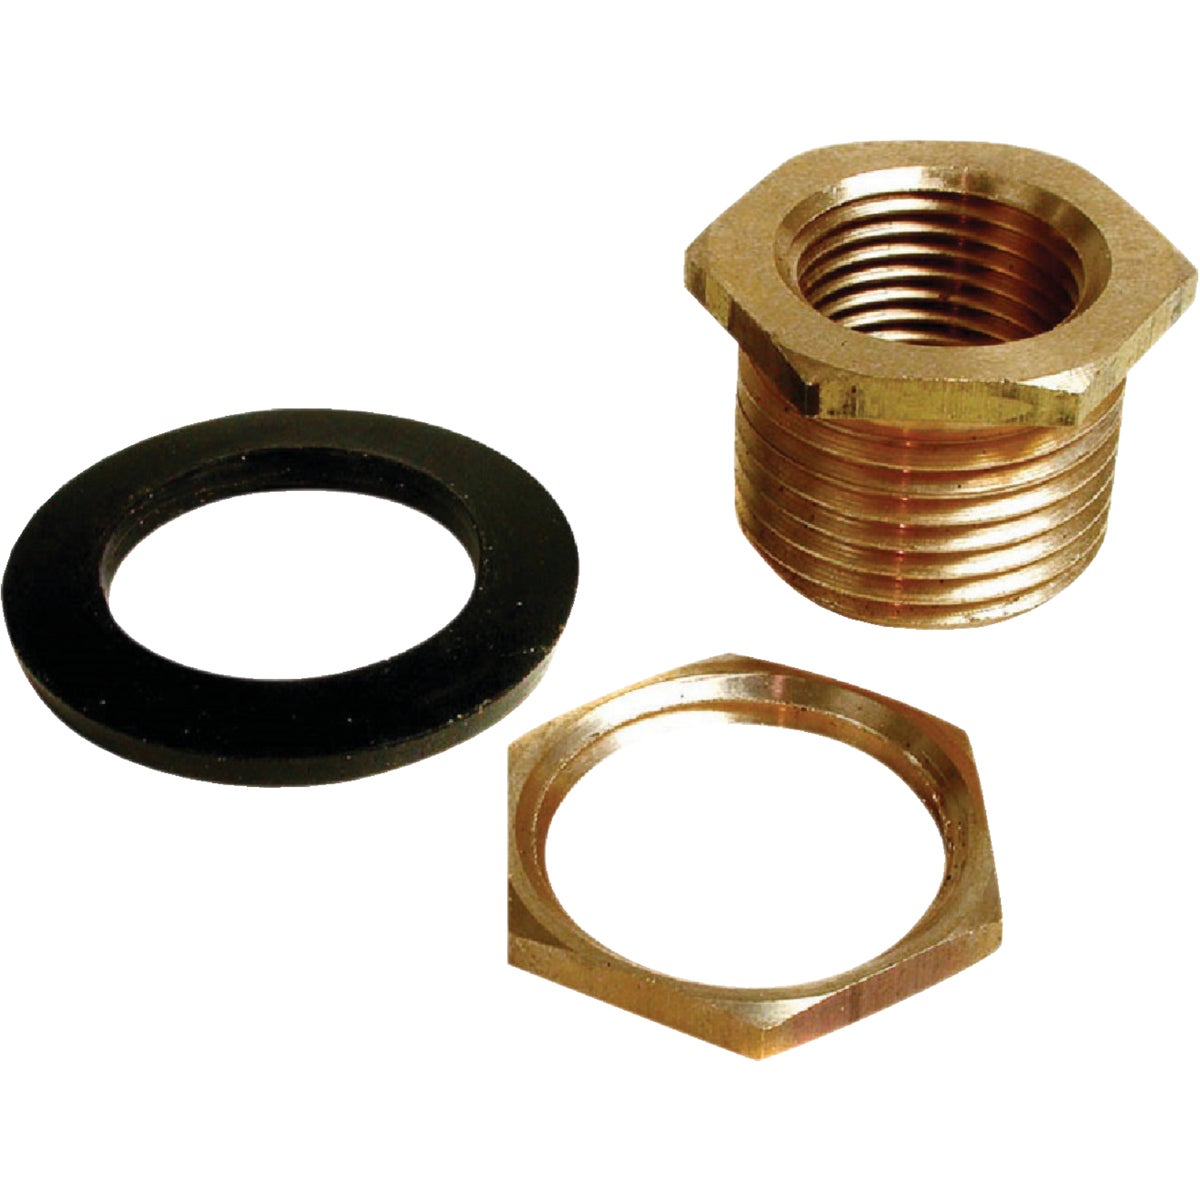 BRASS COOLER DRAIN - 9229 by Dial Manufacturing